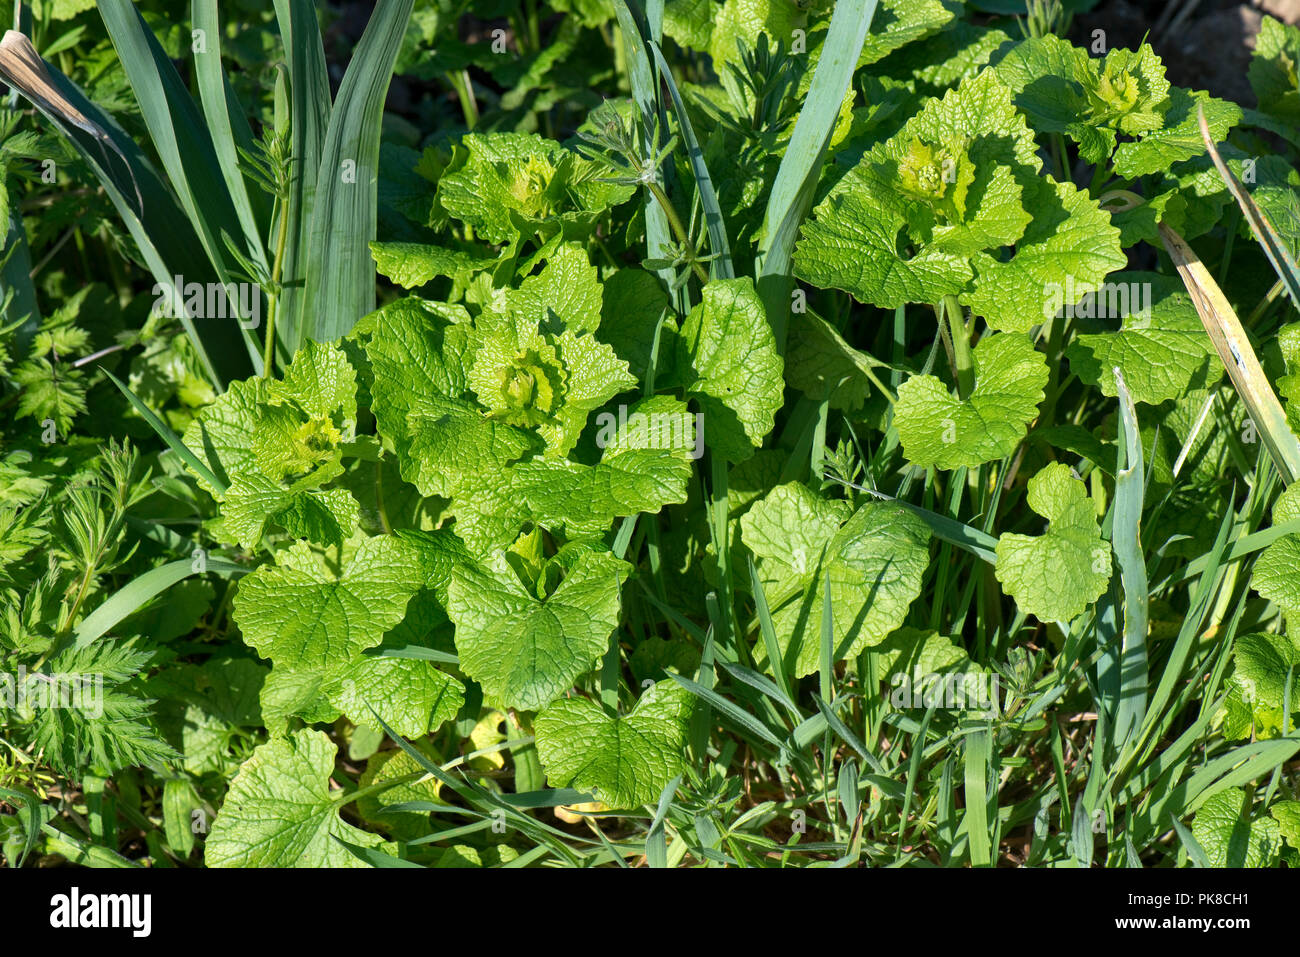 Jack-by-the-hedge, garlic mustard, Alliaria petiolata, and volunteer cereals, grasses in a young leek crop, April Stock Photo